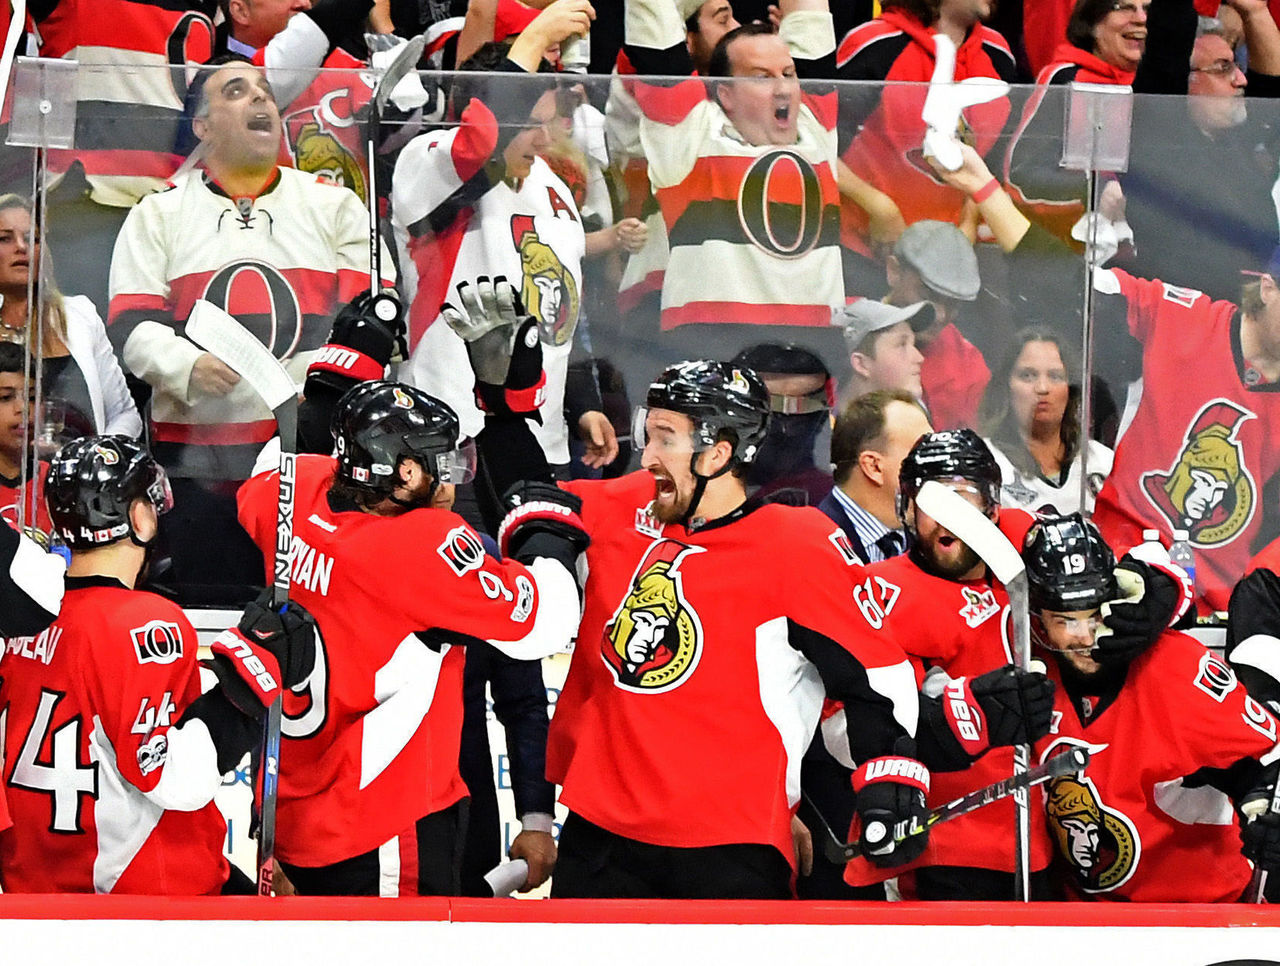 Cropped 2017 05 24t034421z 196253080 nocid rtrmadp 3 nhl stanley cup playoffs pittsburgh penguins at ottawa senators